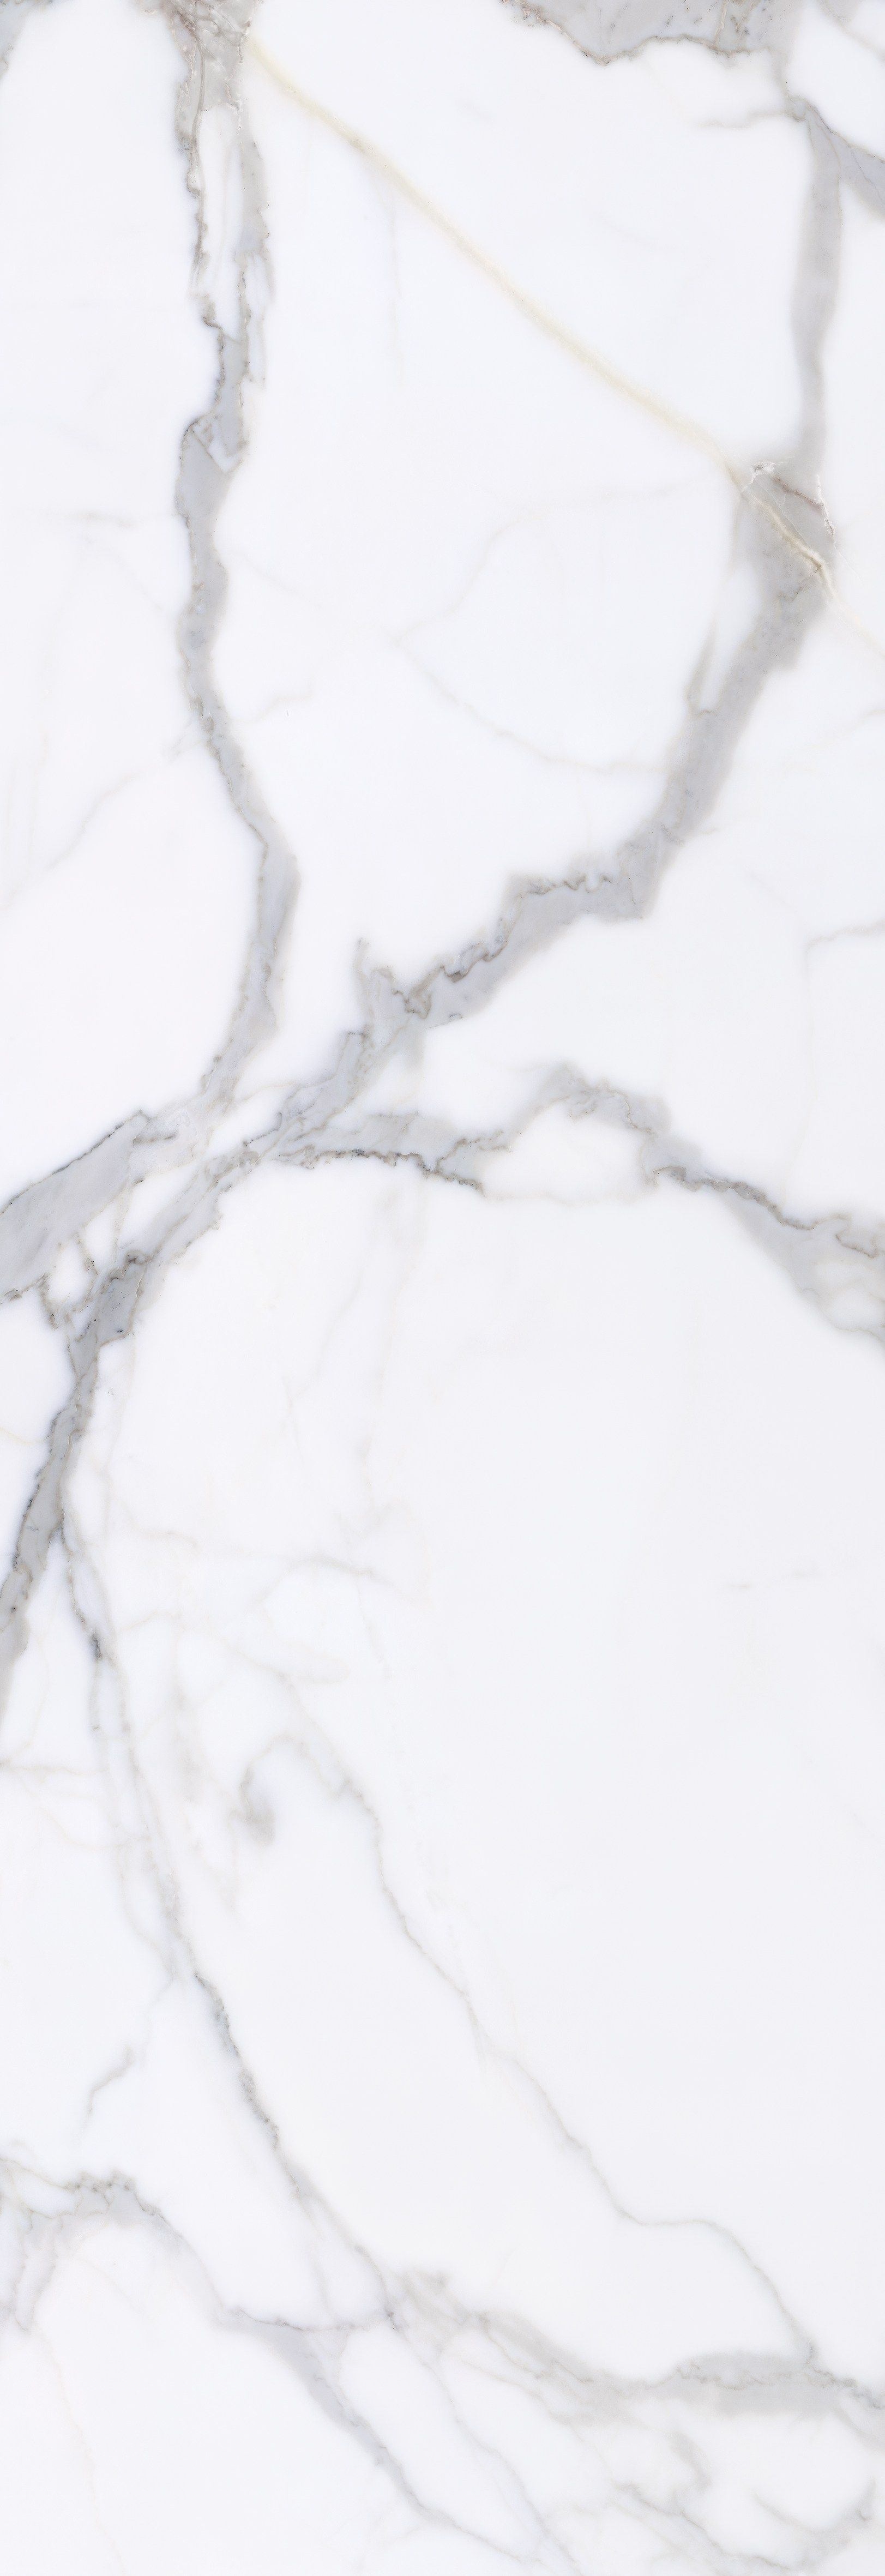 Ultra thin porcelain stoneware wallfloor tiles with stone effect ultra thin porcelain stoneware wallfloor tiles with stone effect kalos bianco stone collection by dailygadgetfo Choice Image